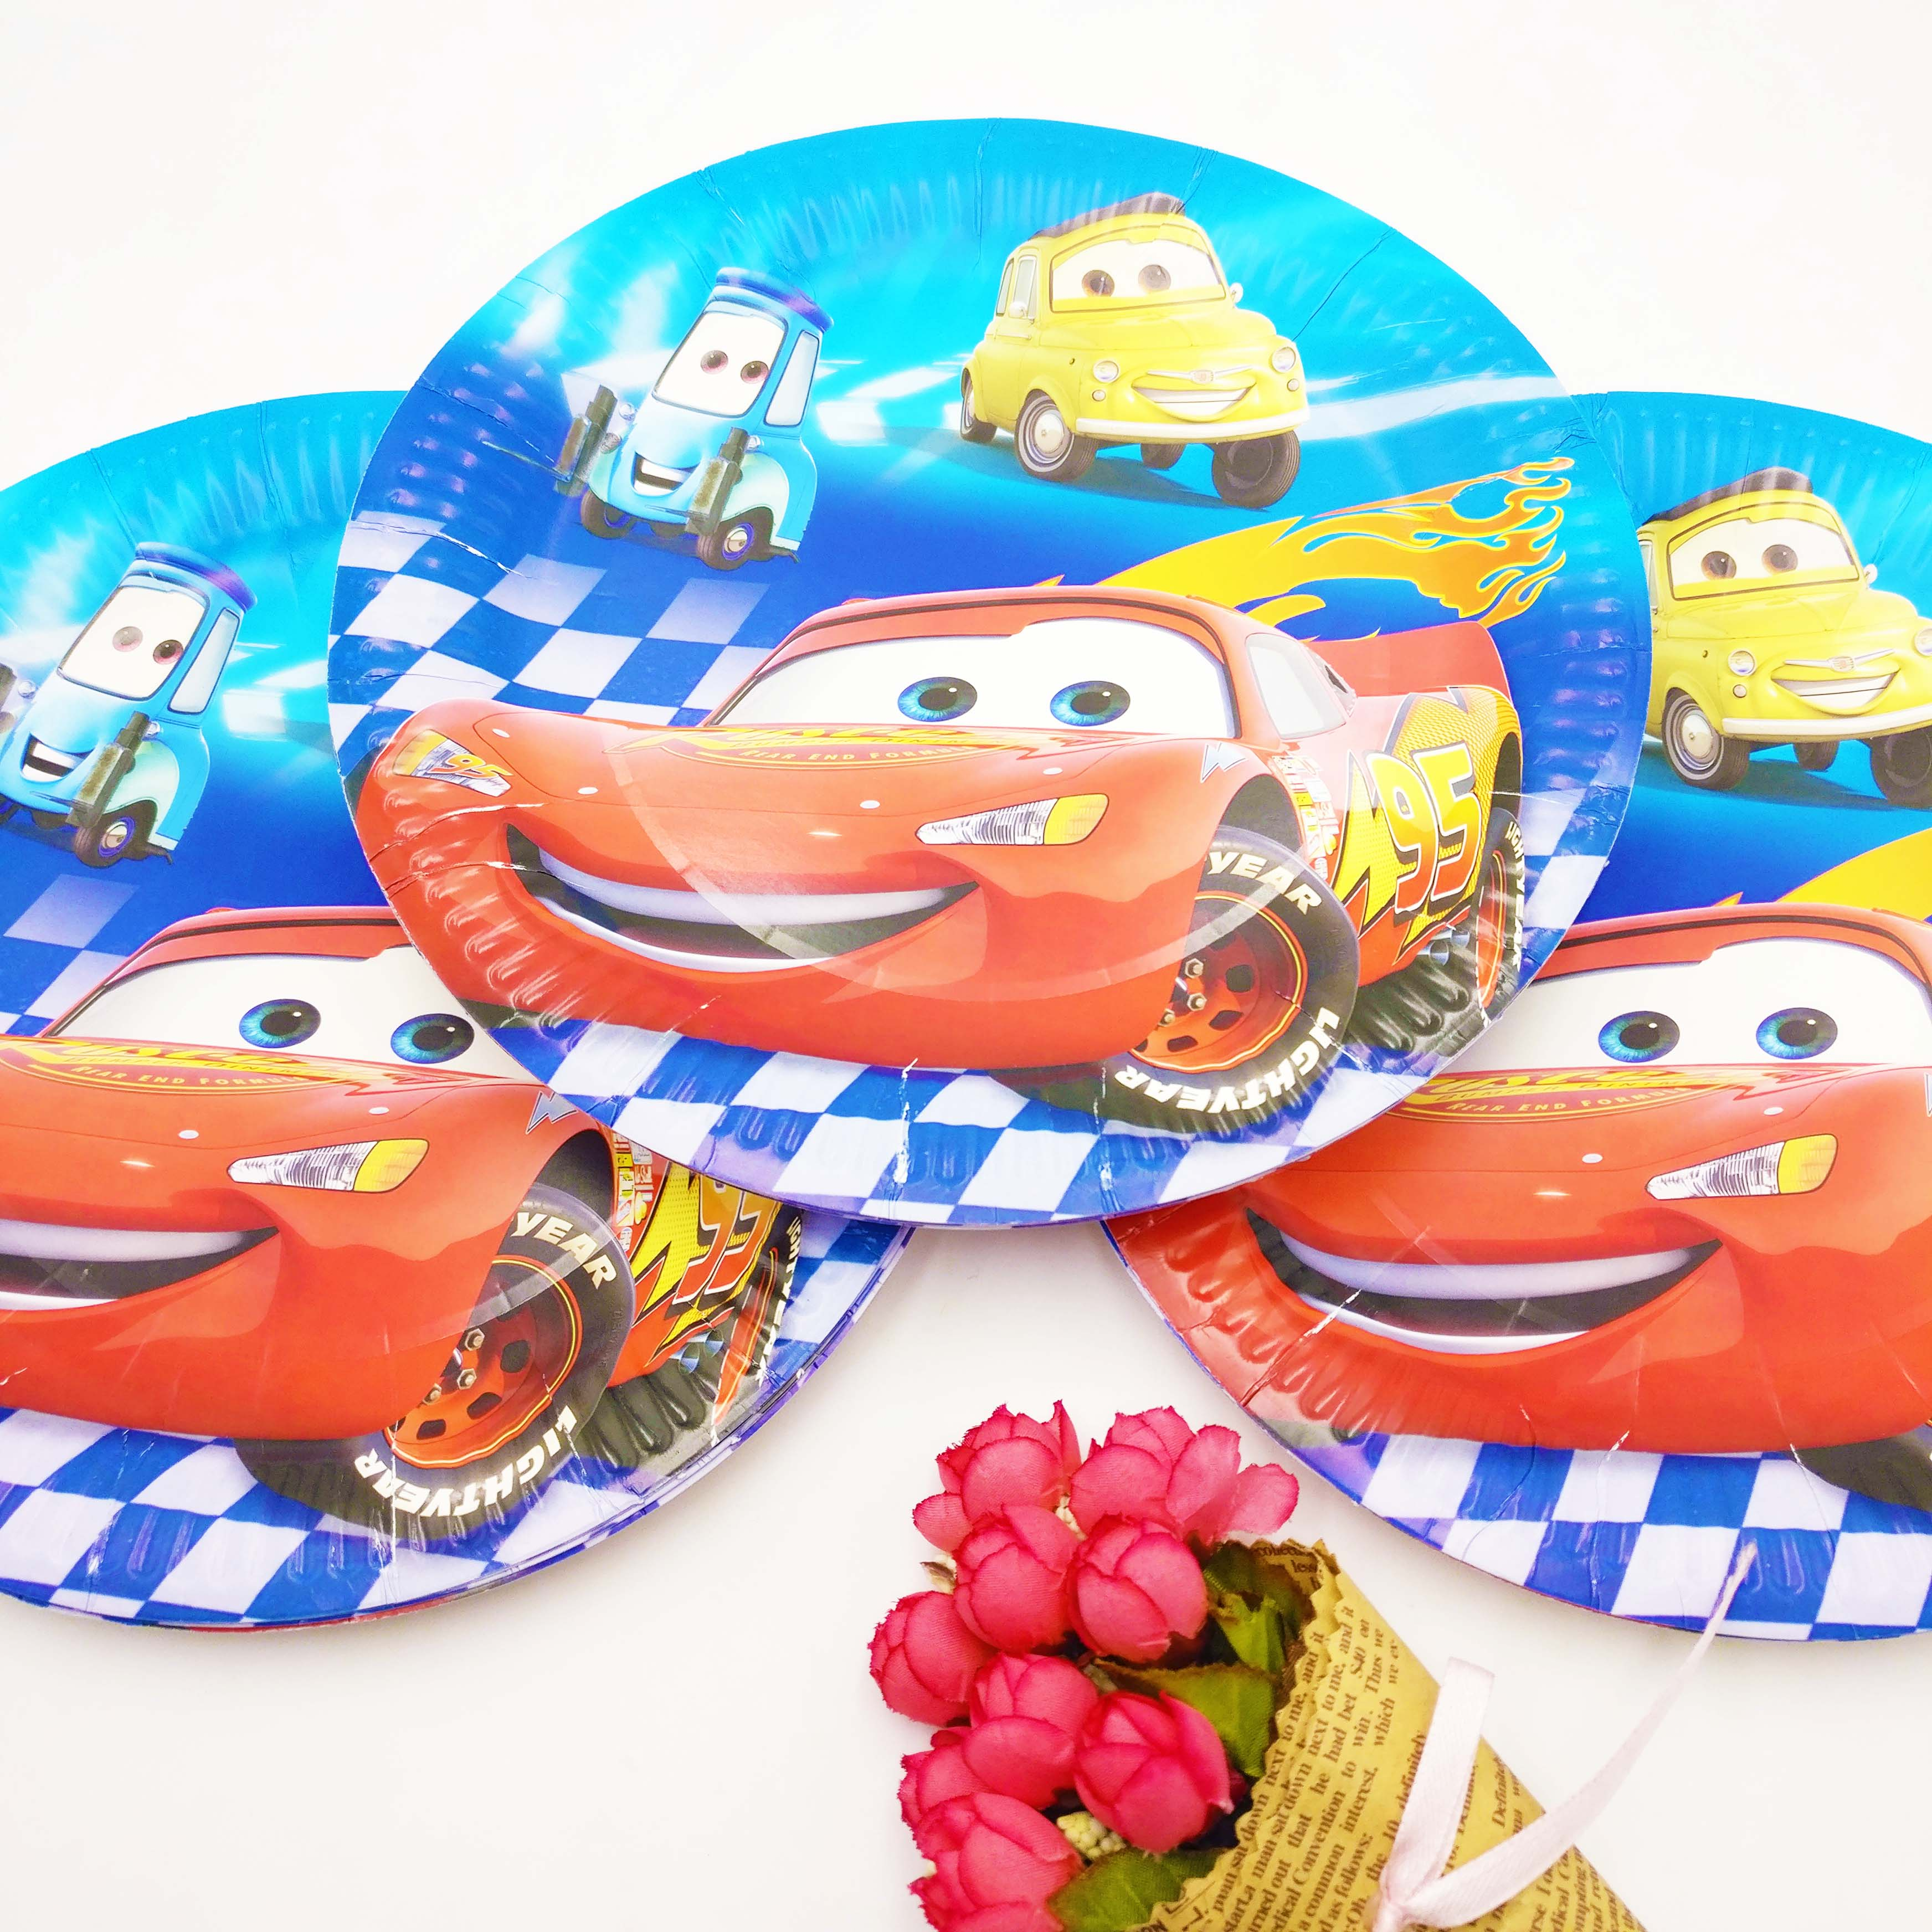 52pcs Disney Party Supplies Tableware Set Cartoon Cars Lightning McQueen Kids Birthday Party Decoration Baby Shower Party Decor in Disposable Party Tableware from Home Garden